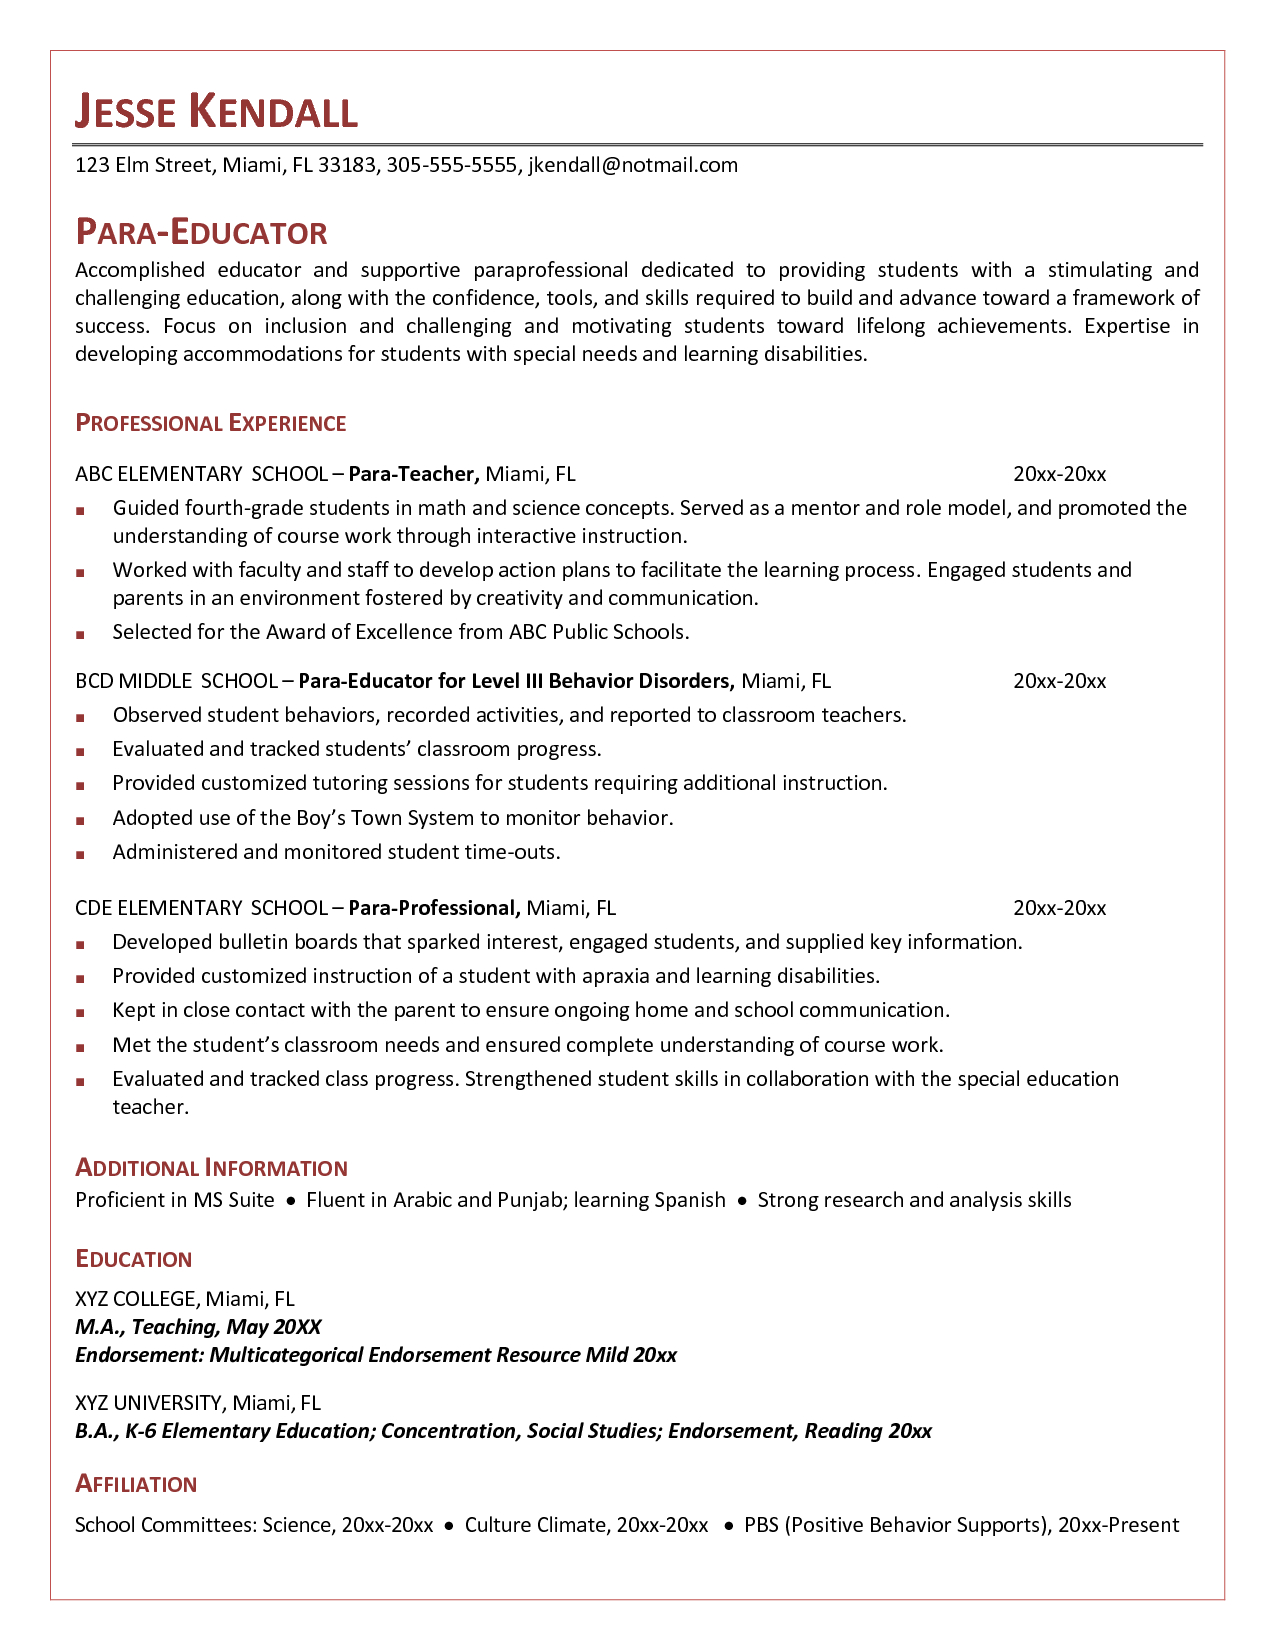 Cover Letter Template for Teachers Aide - Cover Letter for Paraeducator Example O